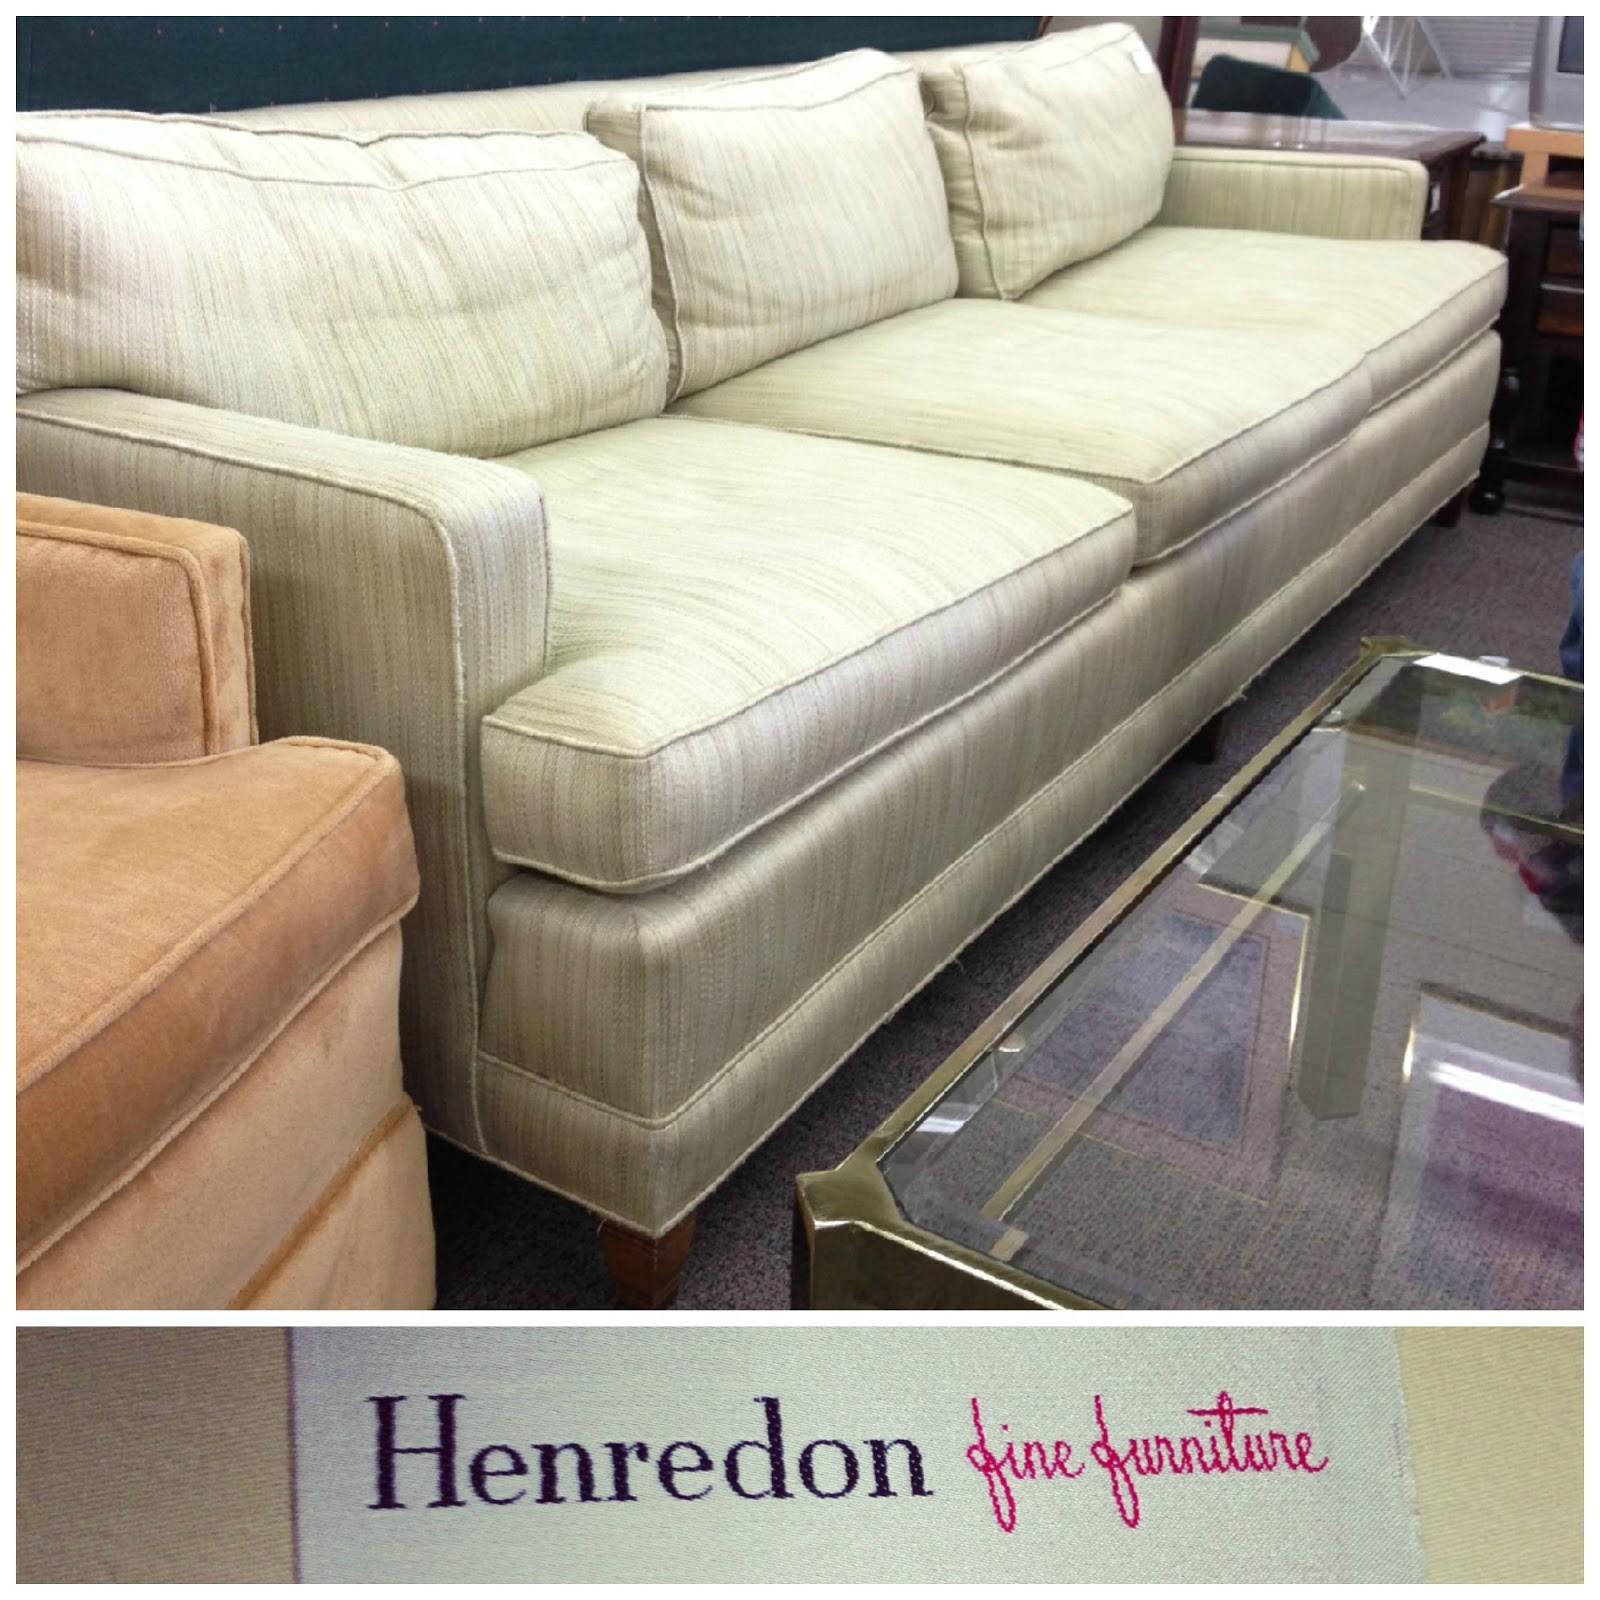 henredon sofa fabrics liquidation montreal abby manchesky interiors a patterned compel or repel